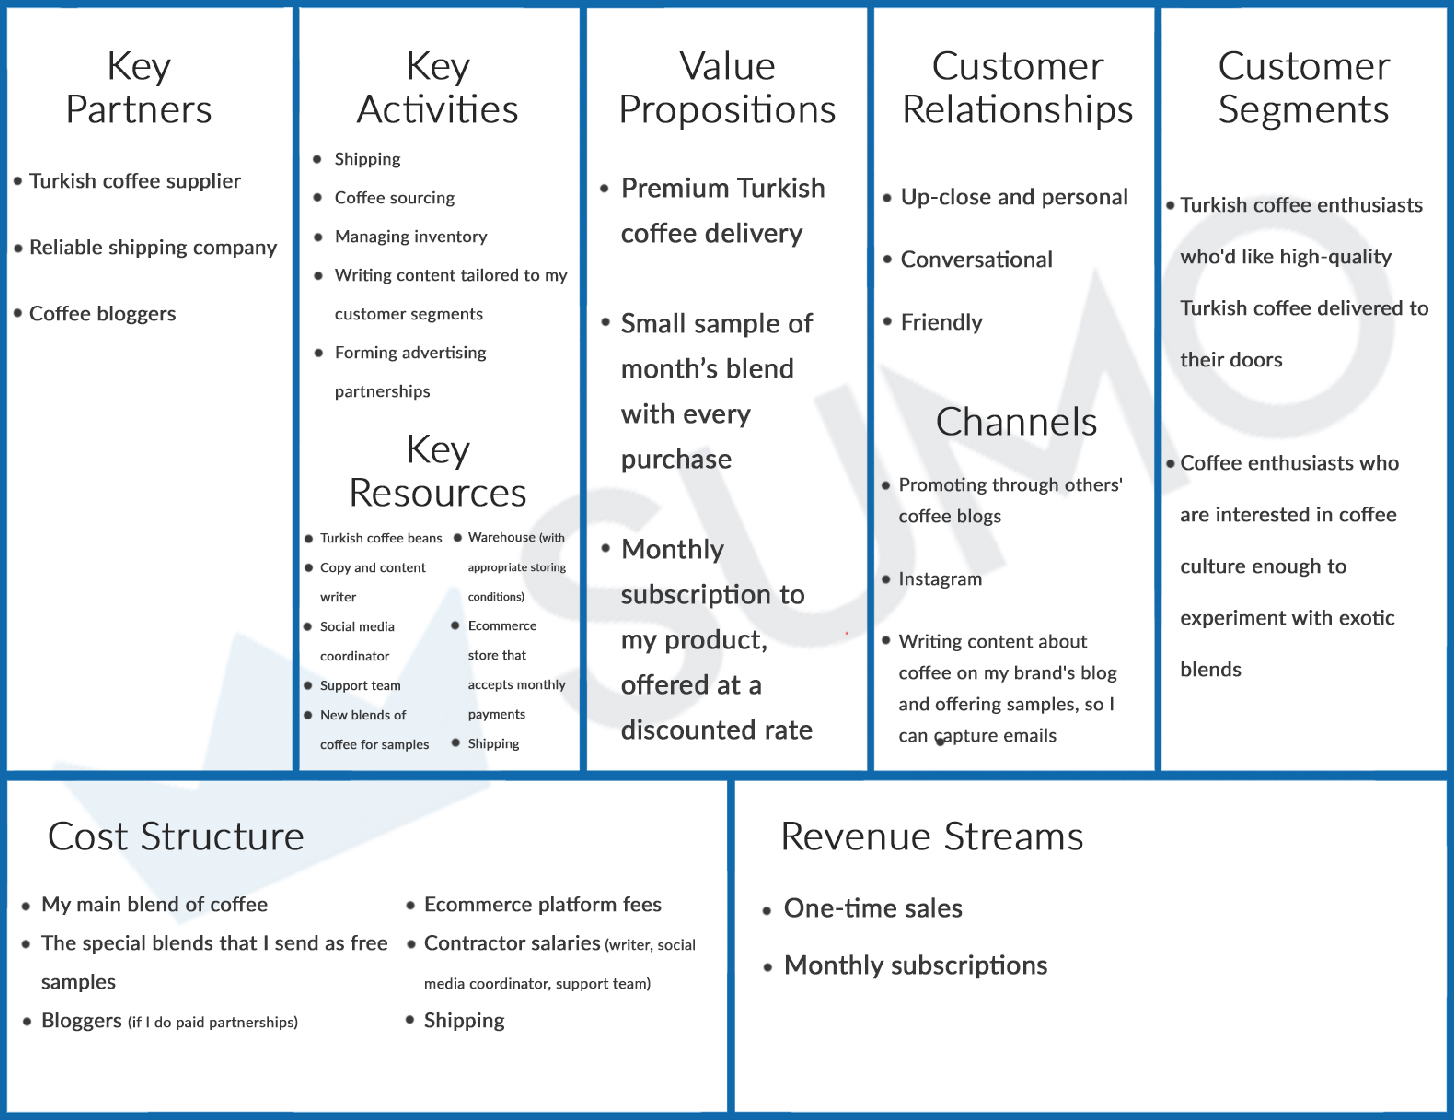 Screenshot showing a completed business model canvas